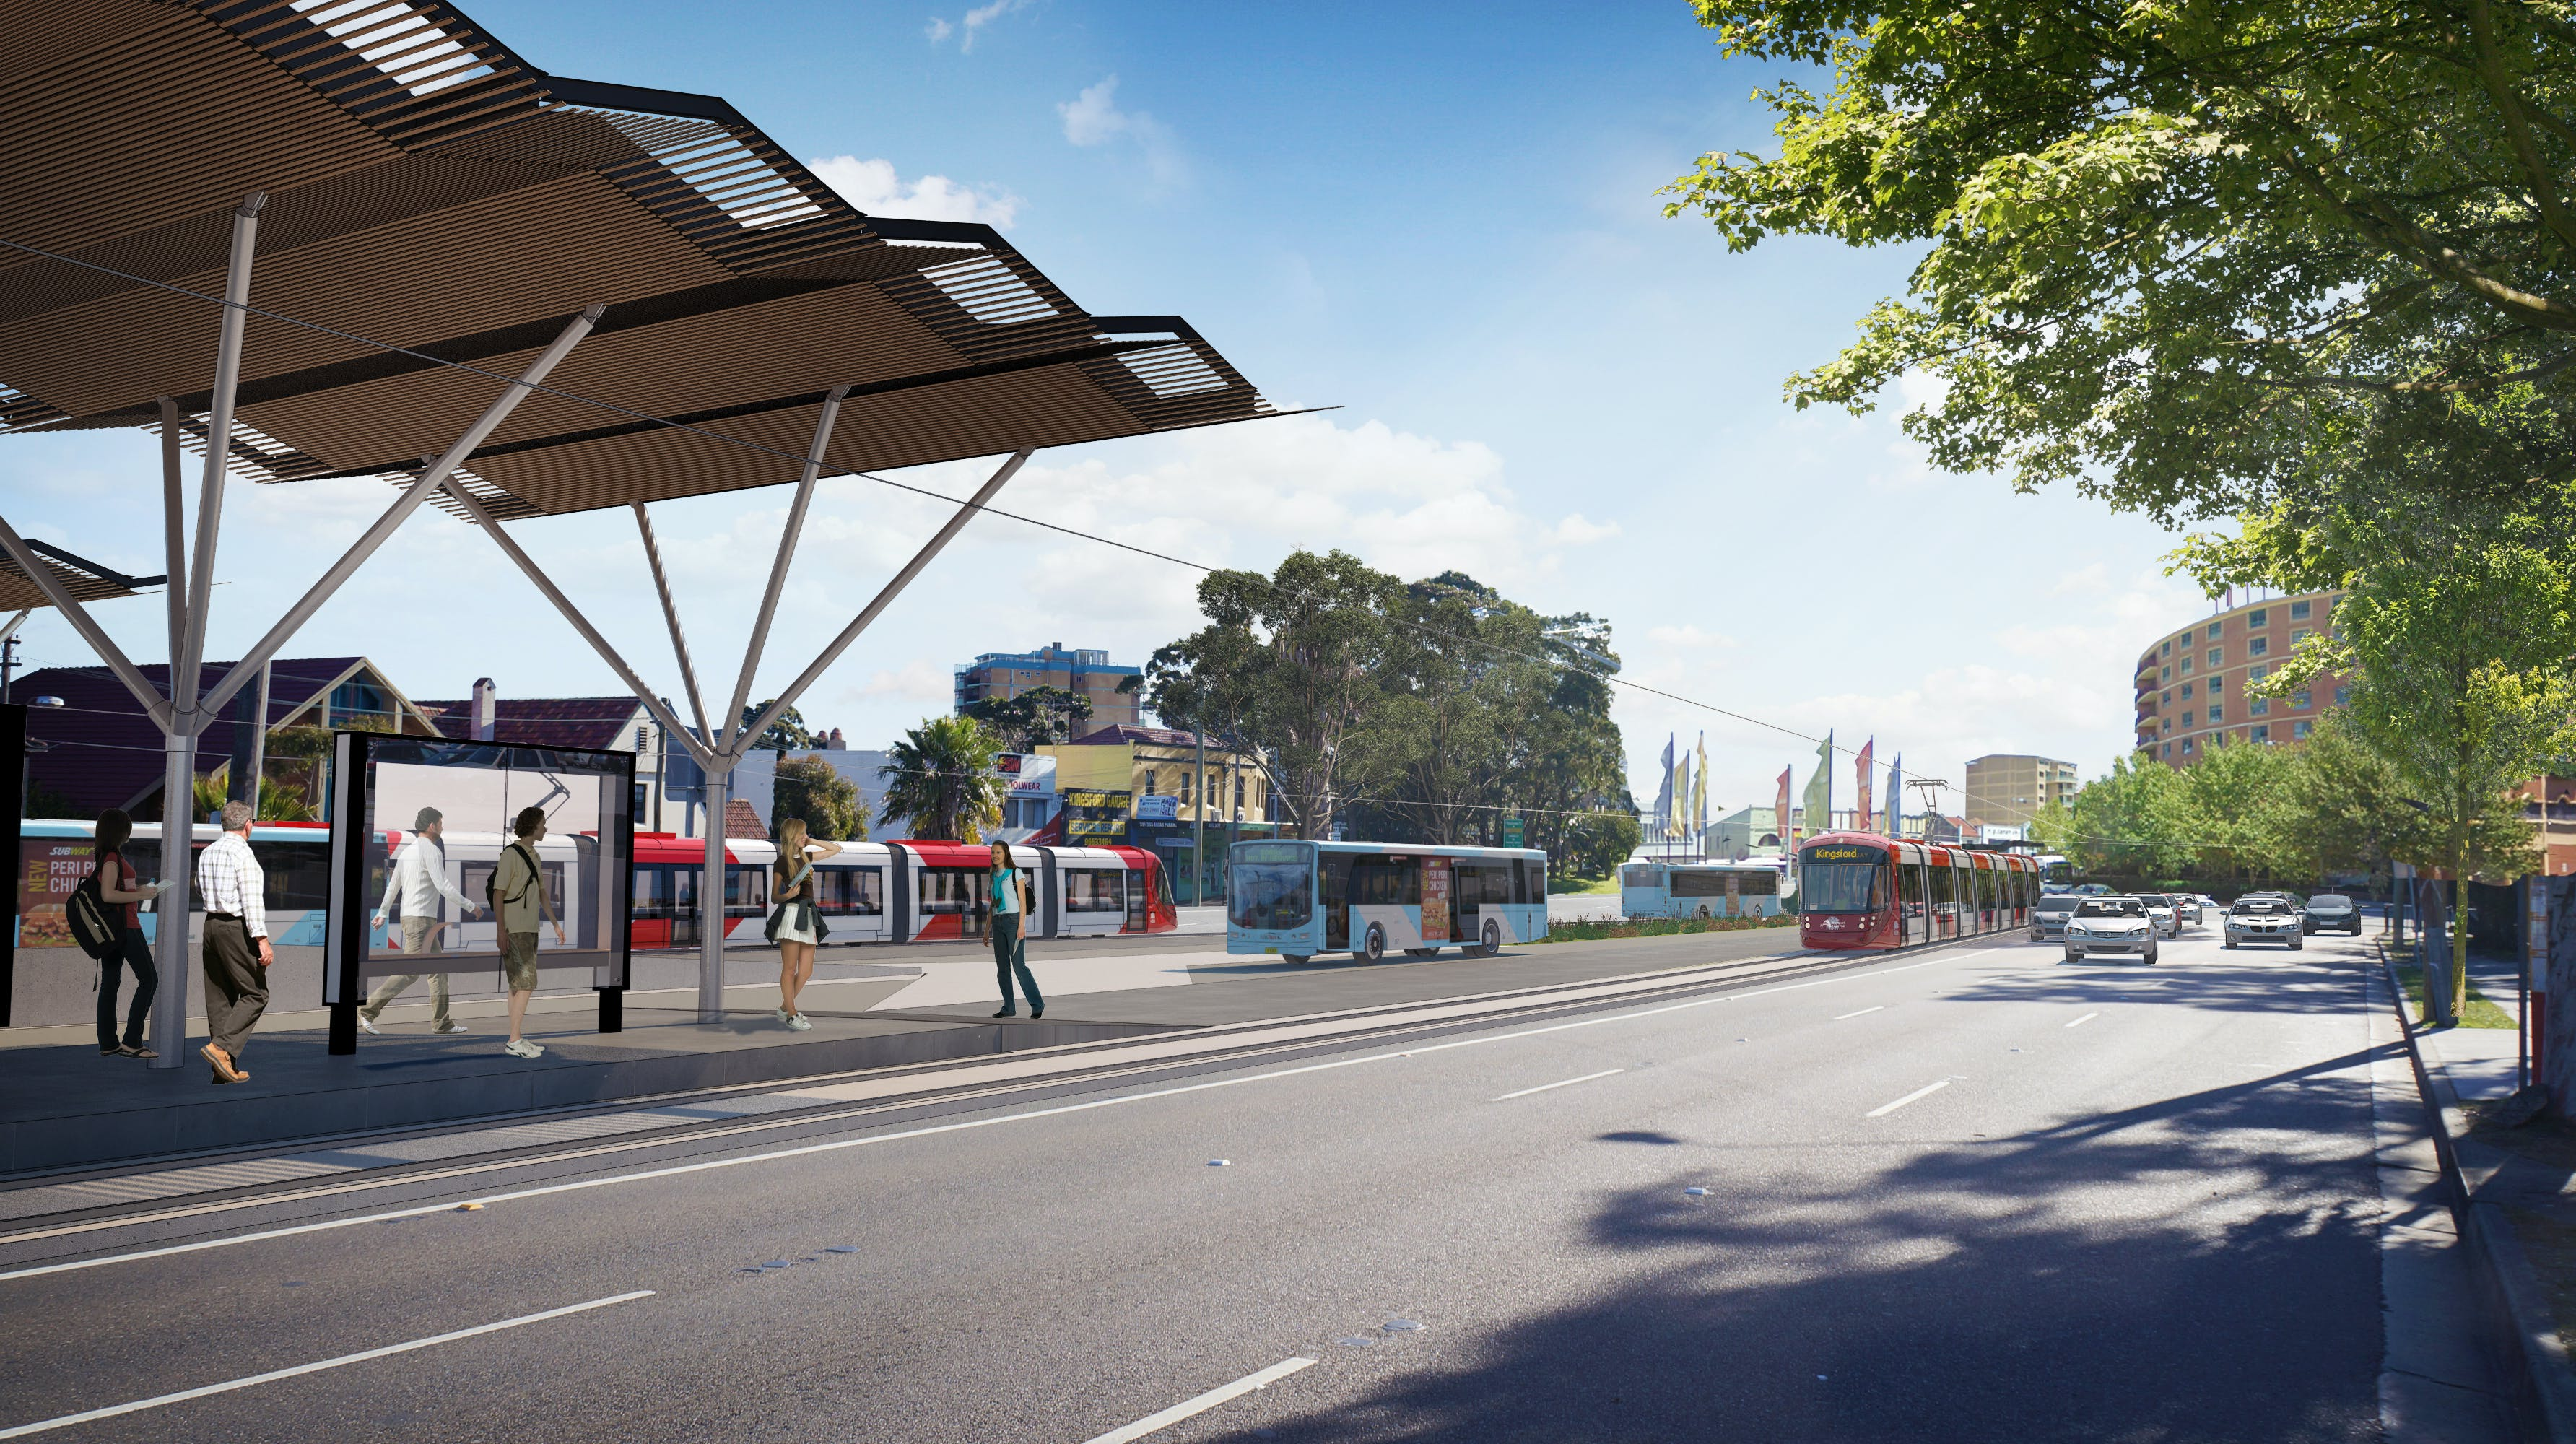 Artist impression: Light rail at Kingsford (Source: Transport for NSW)